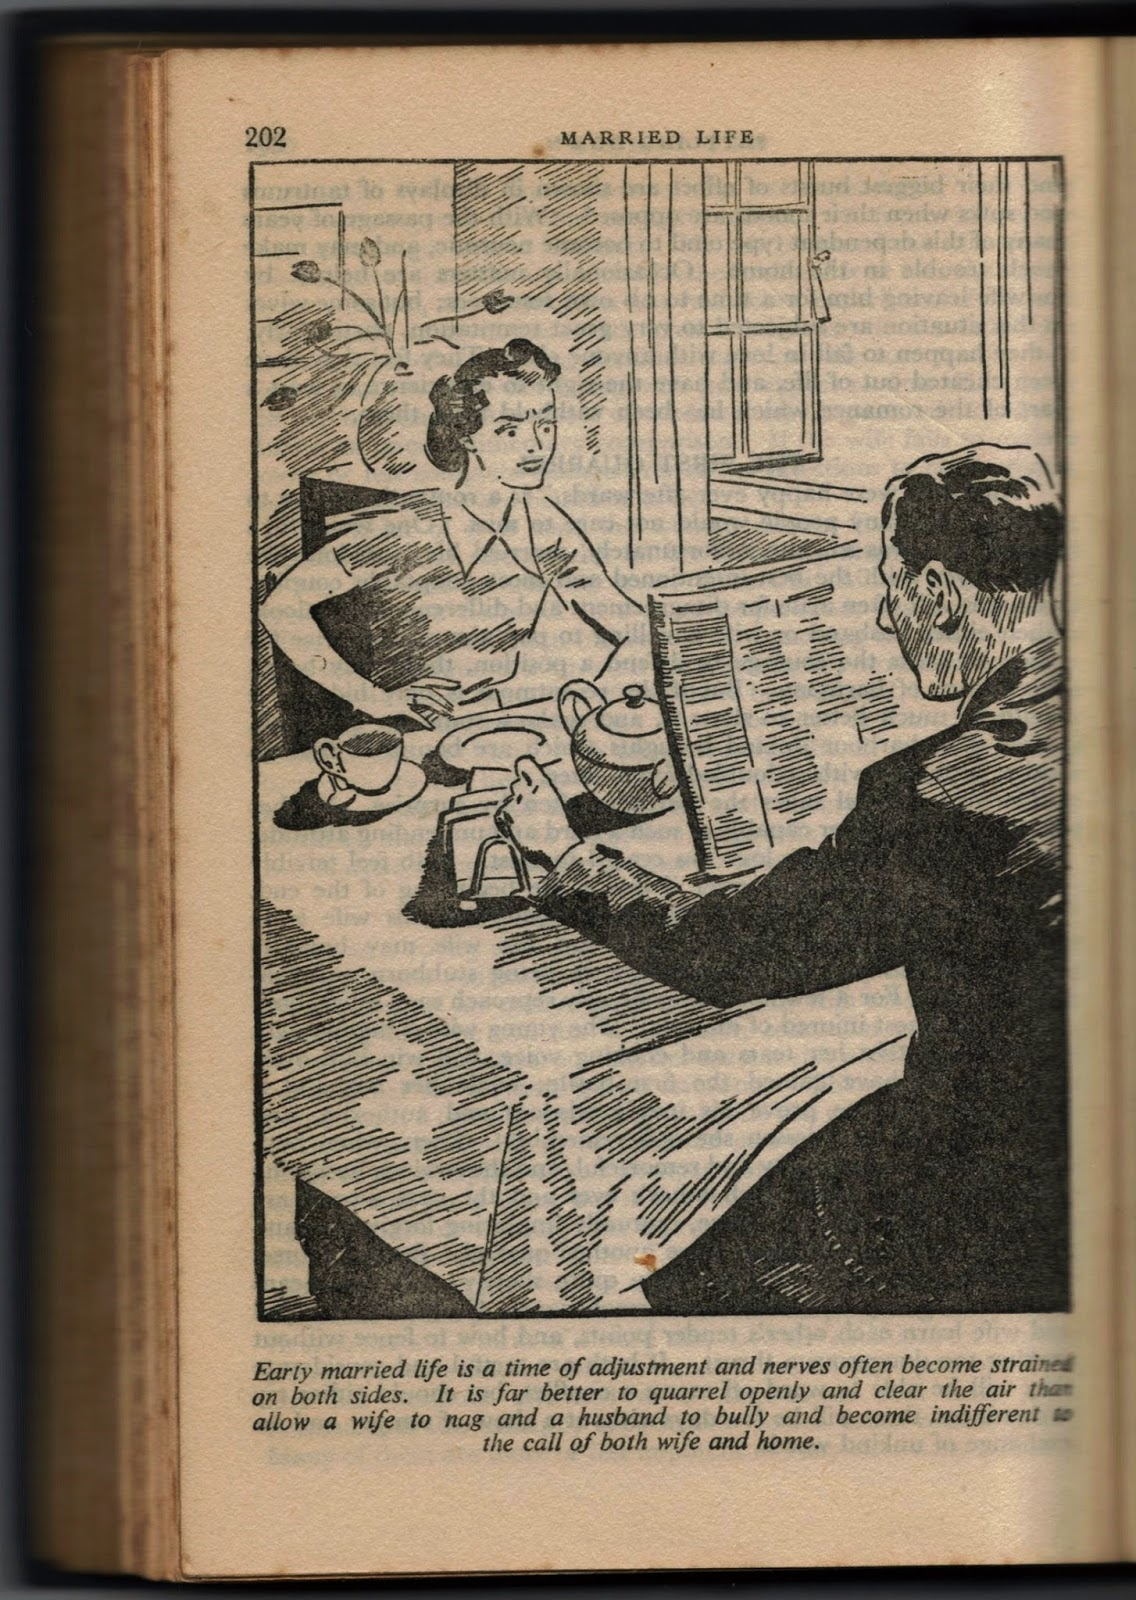 Self help marriage problems from 1939